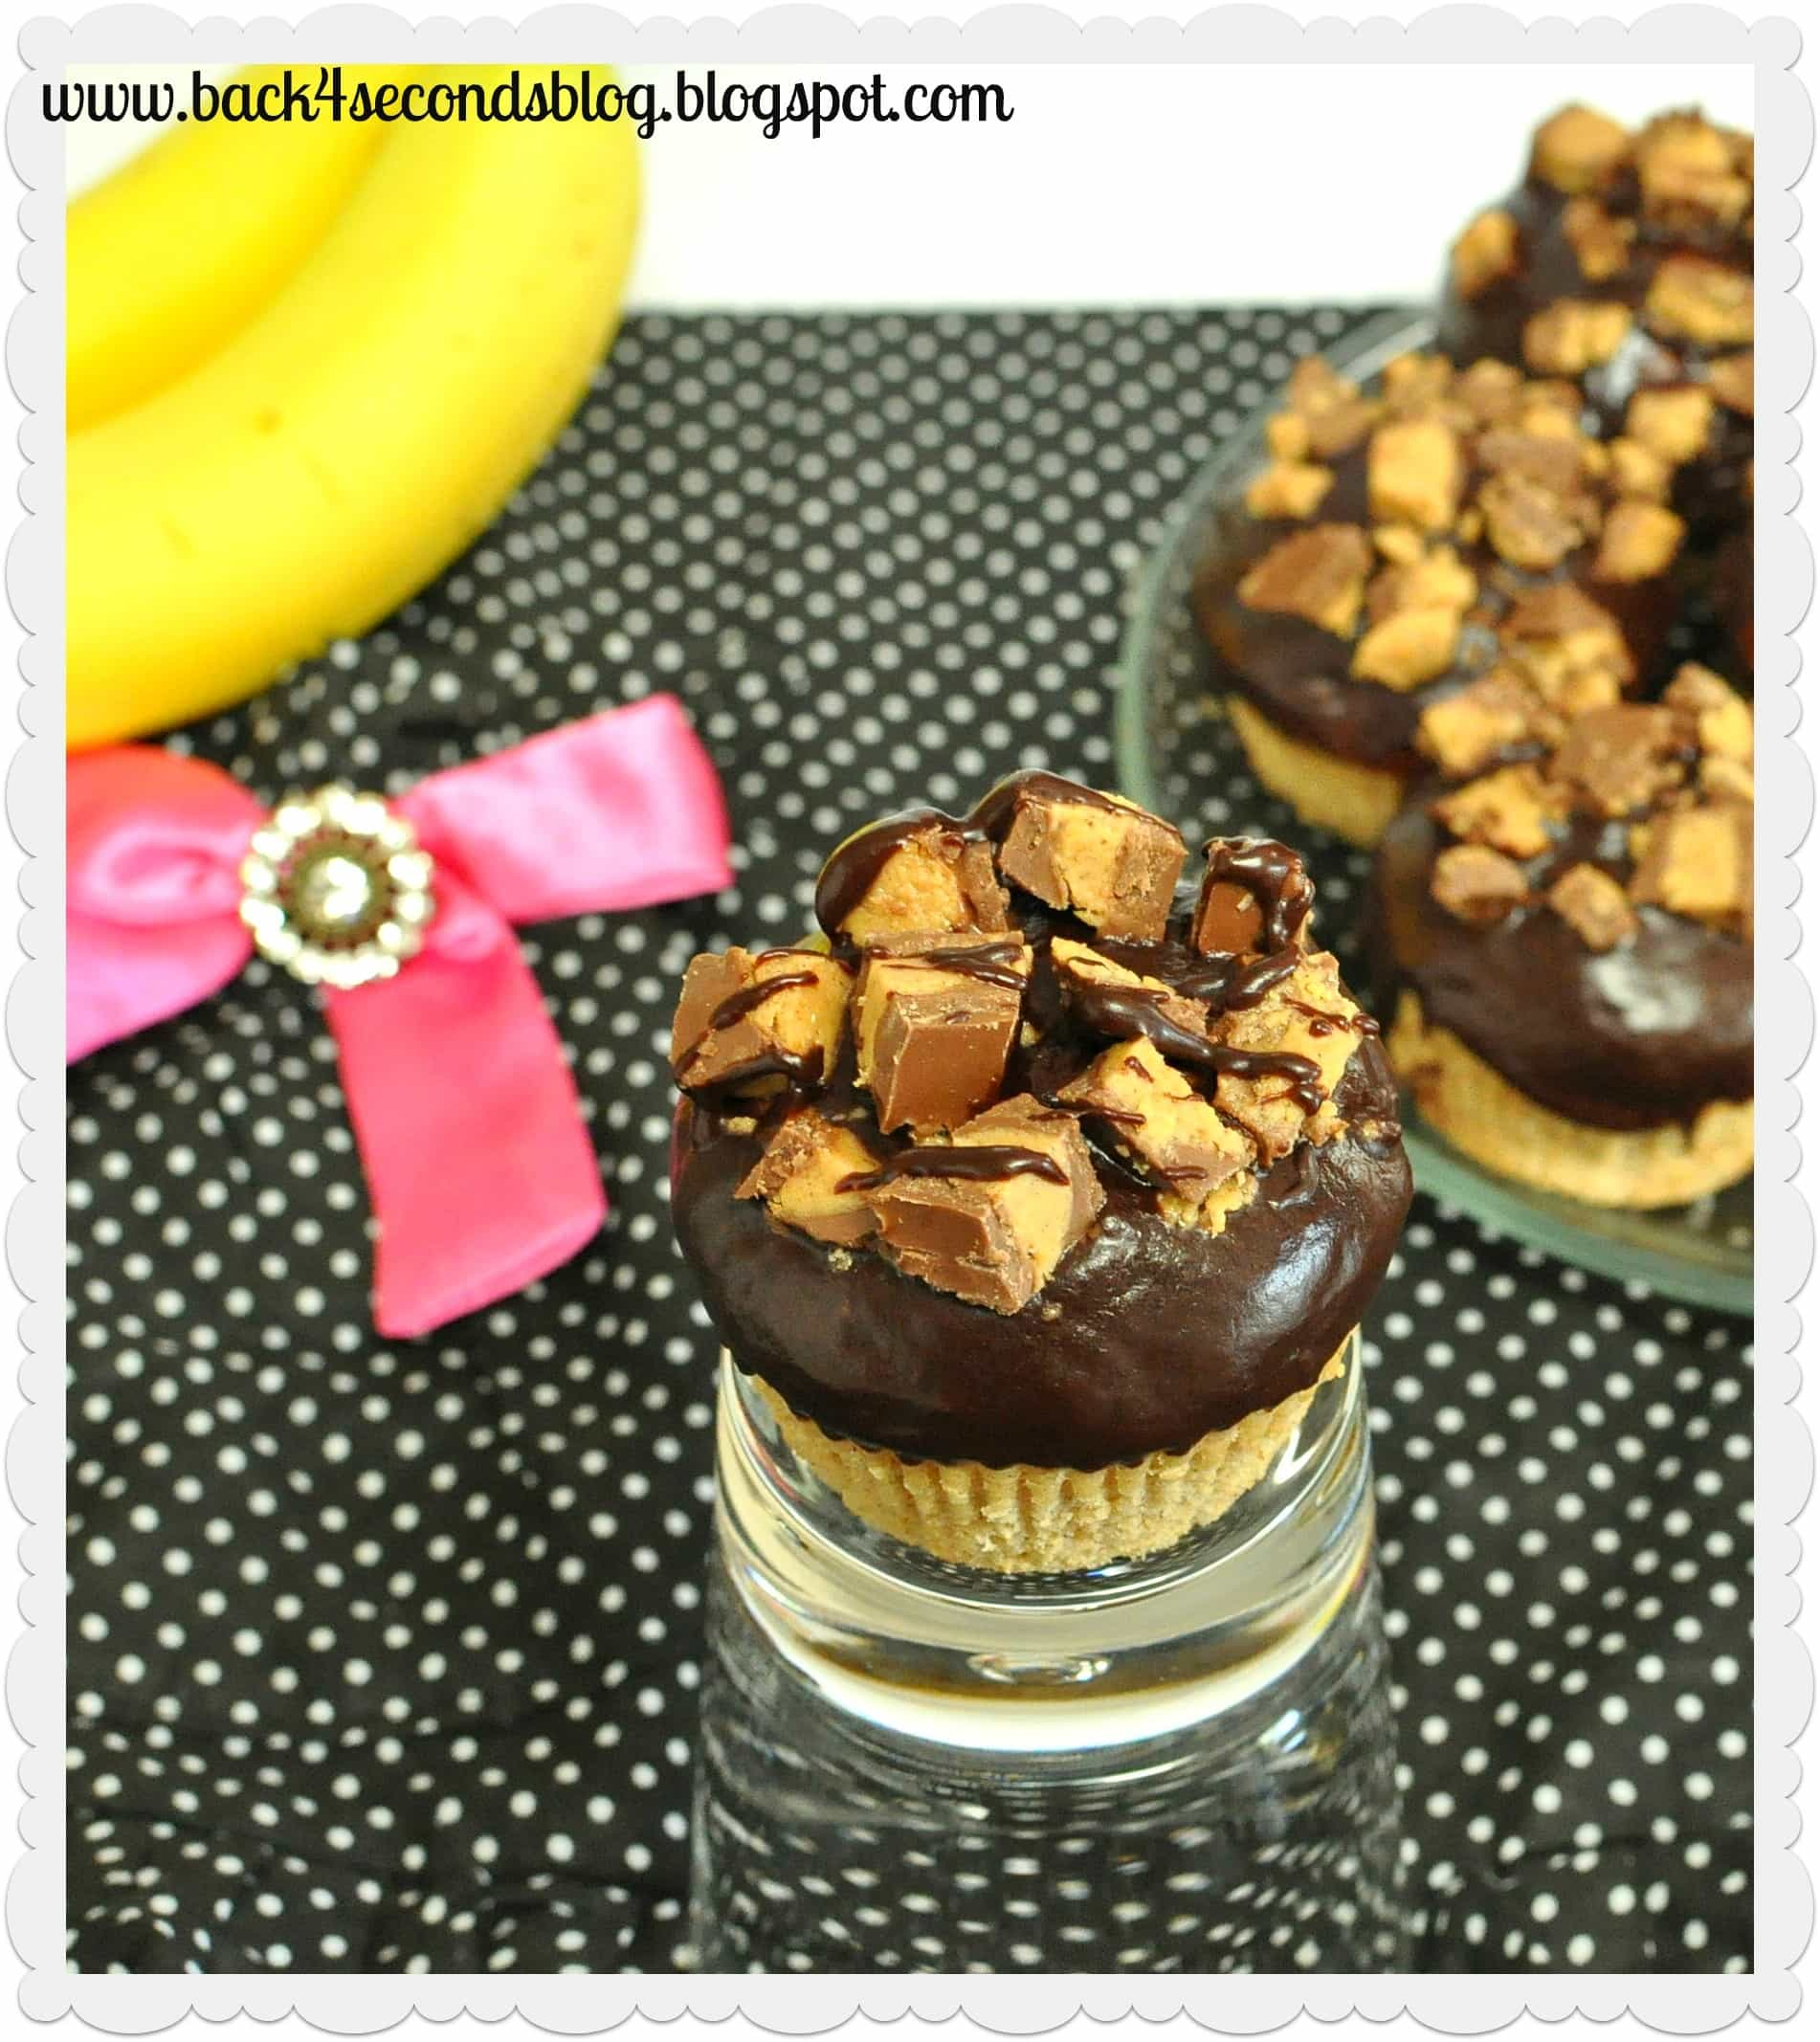 Ganache Topped Peanut Butter Cup Muffins @BackForSeconds #muffins #cupcake #peanutbutter #chocolate #reeses